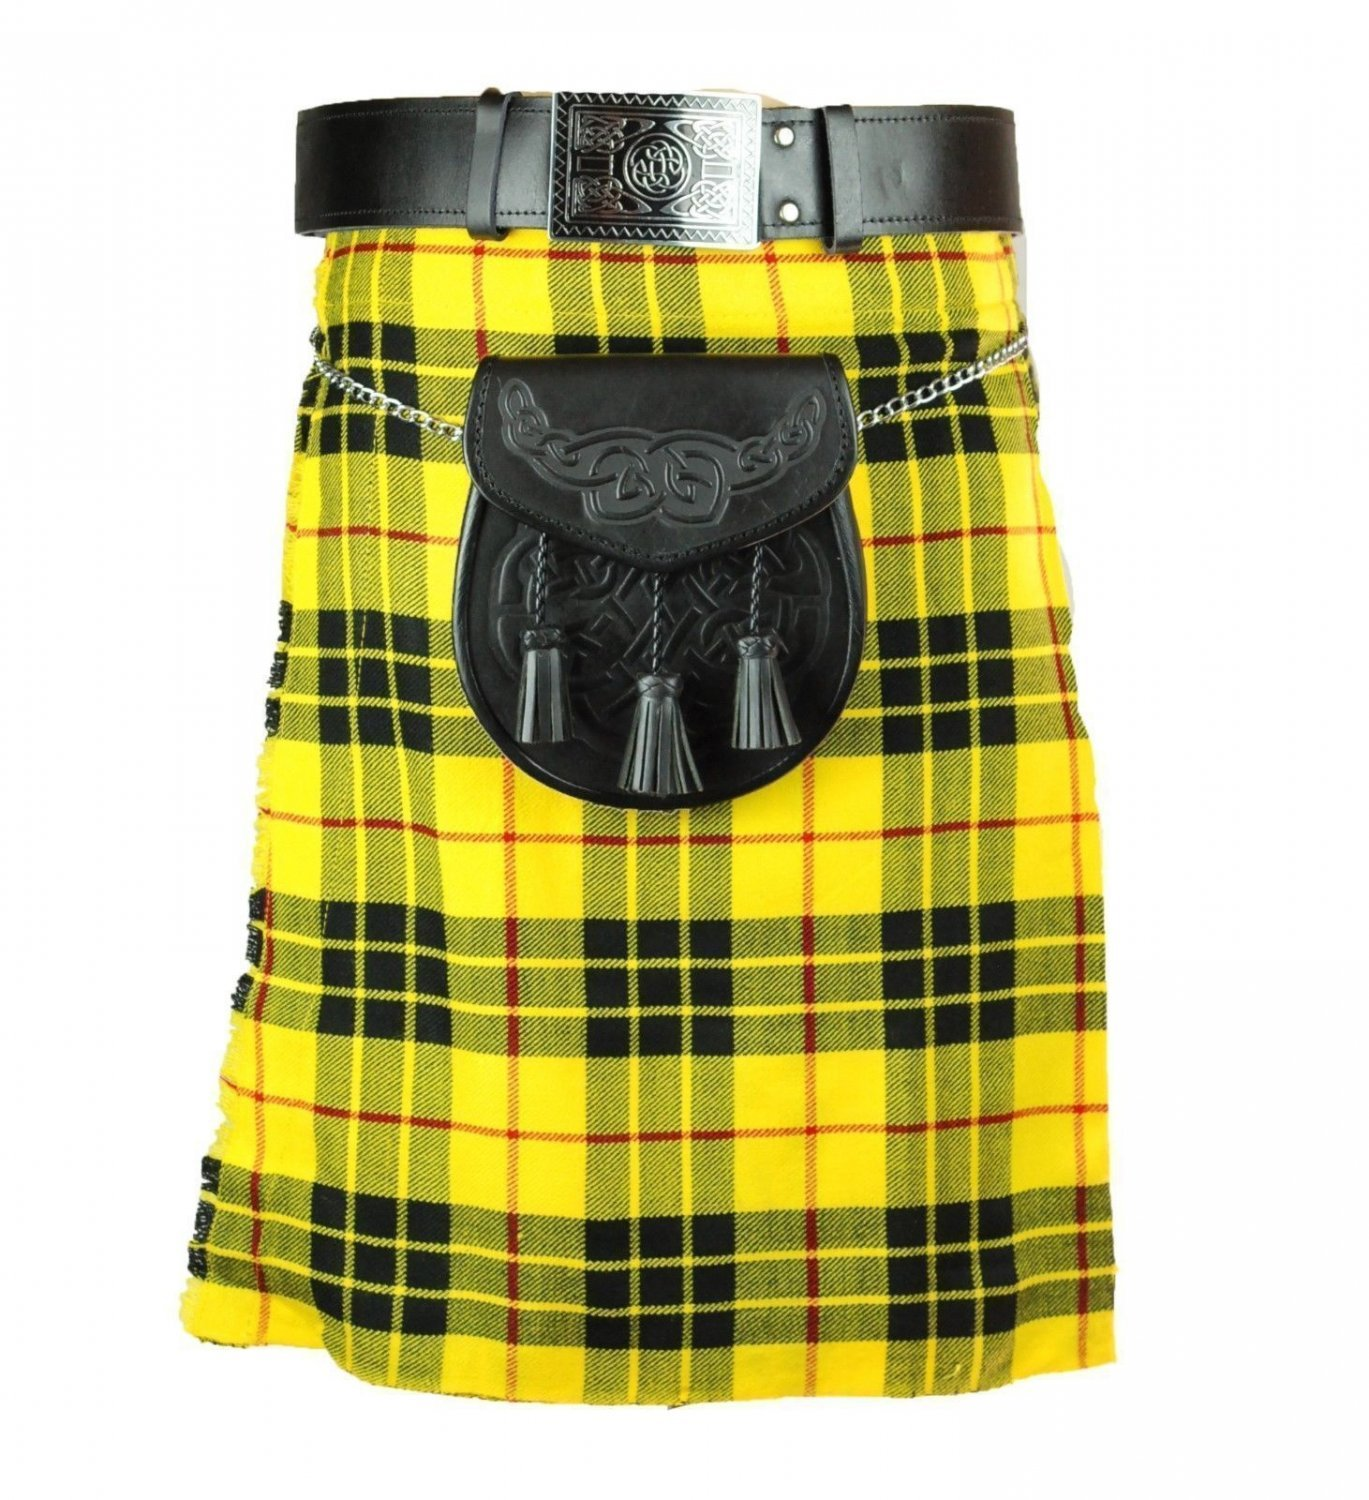 Deluxe Scottish Highland Utility Sports, Traditional Macleod of Lewis Tartan Kilts to Set 30Size